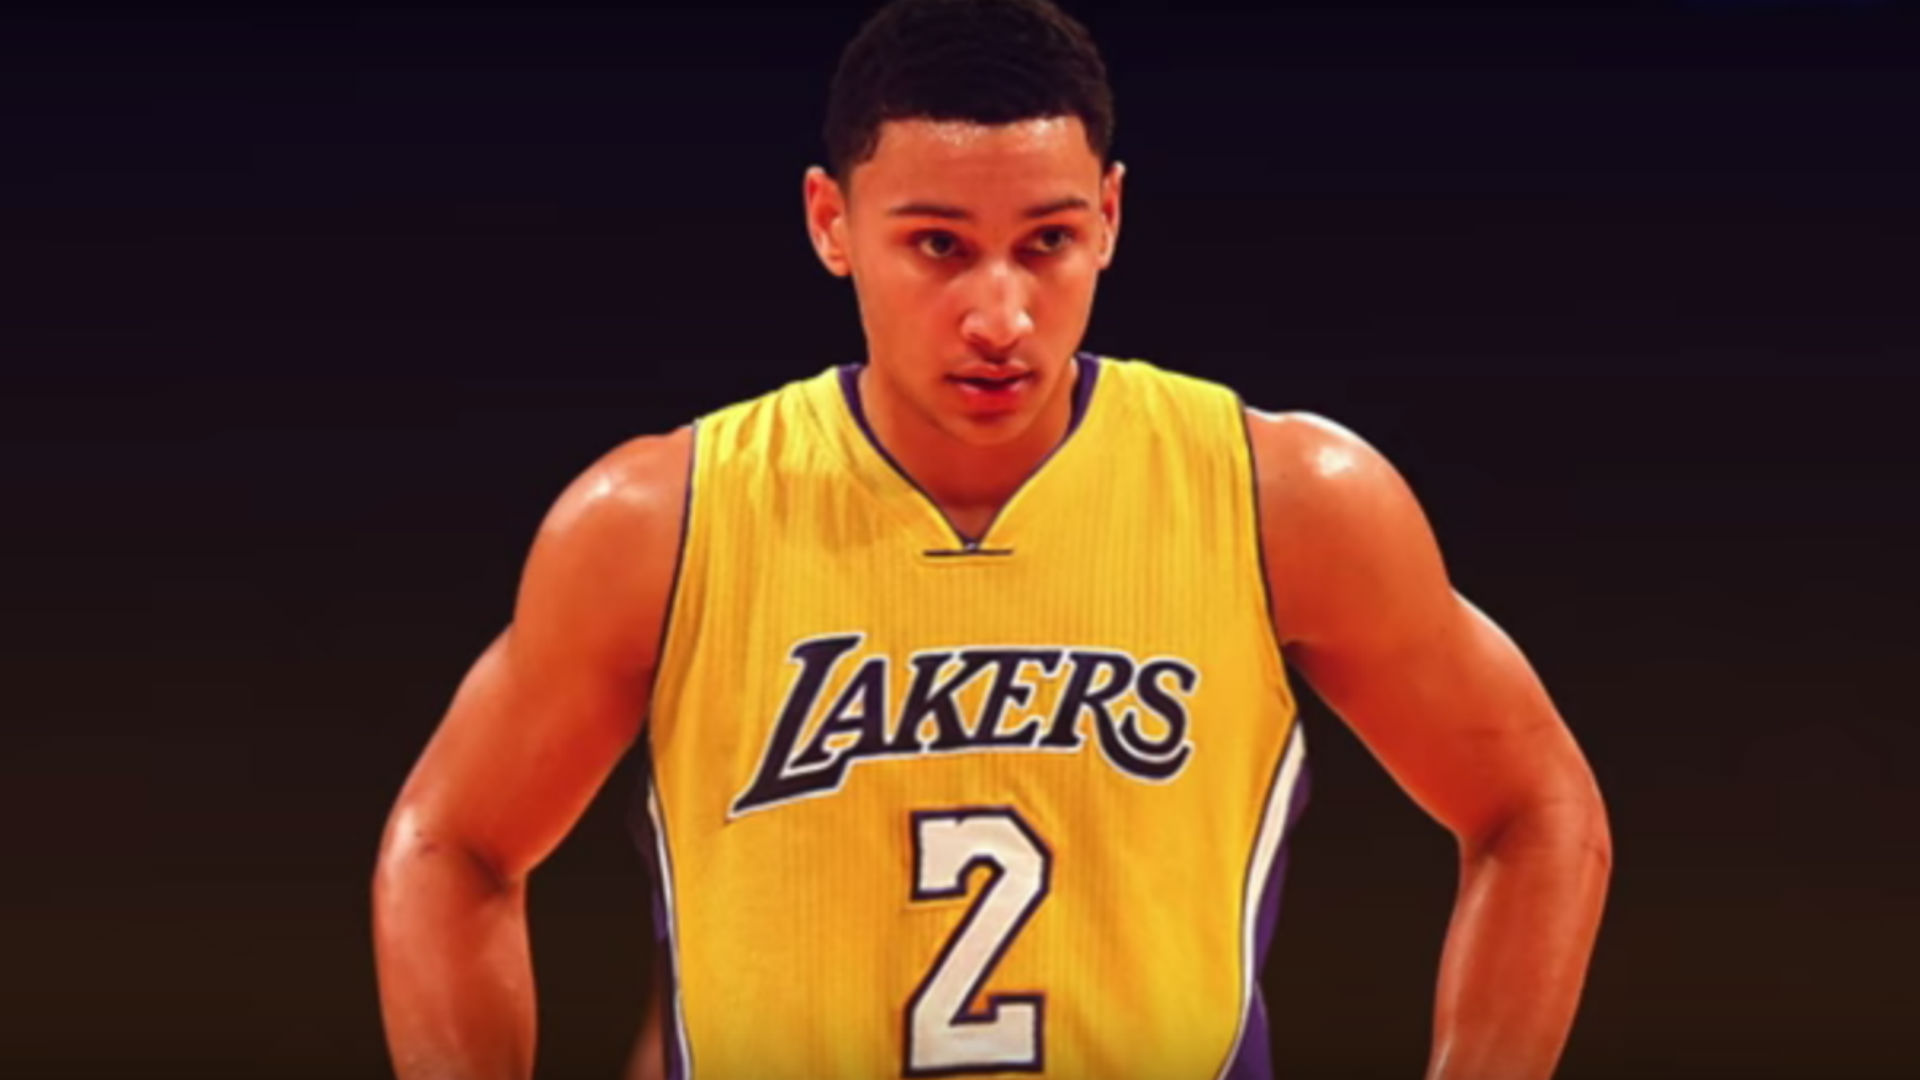 Ben Simmons Career Stats >> NBA | Lakers fans already made a rap video about drafting Ben Simmons | SPORTAL